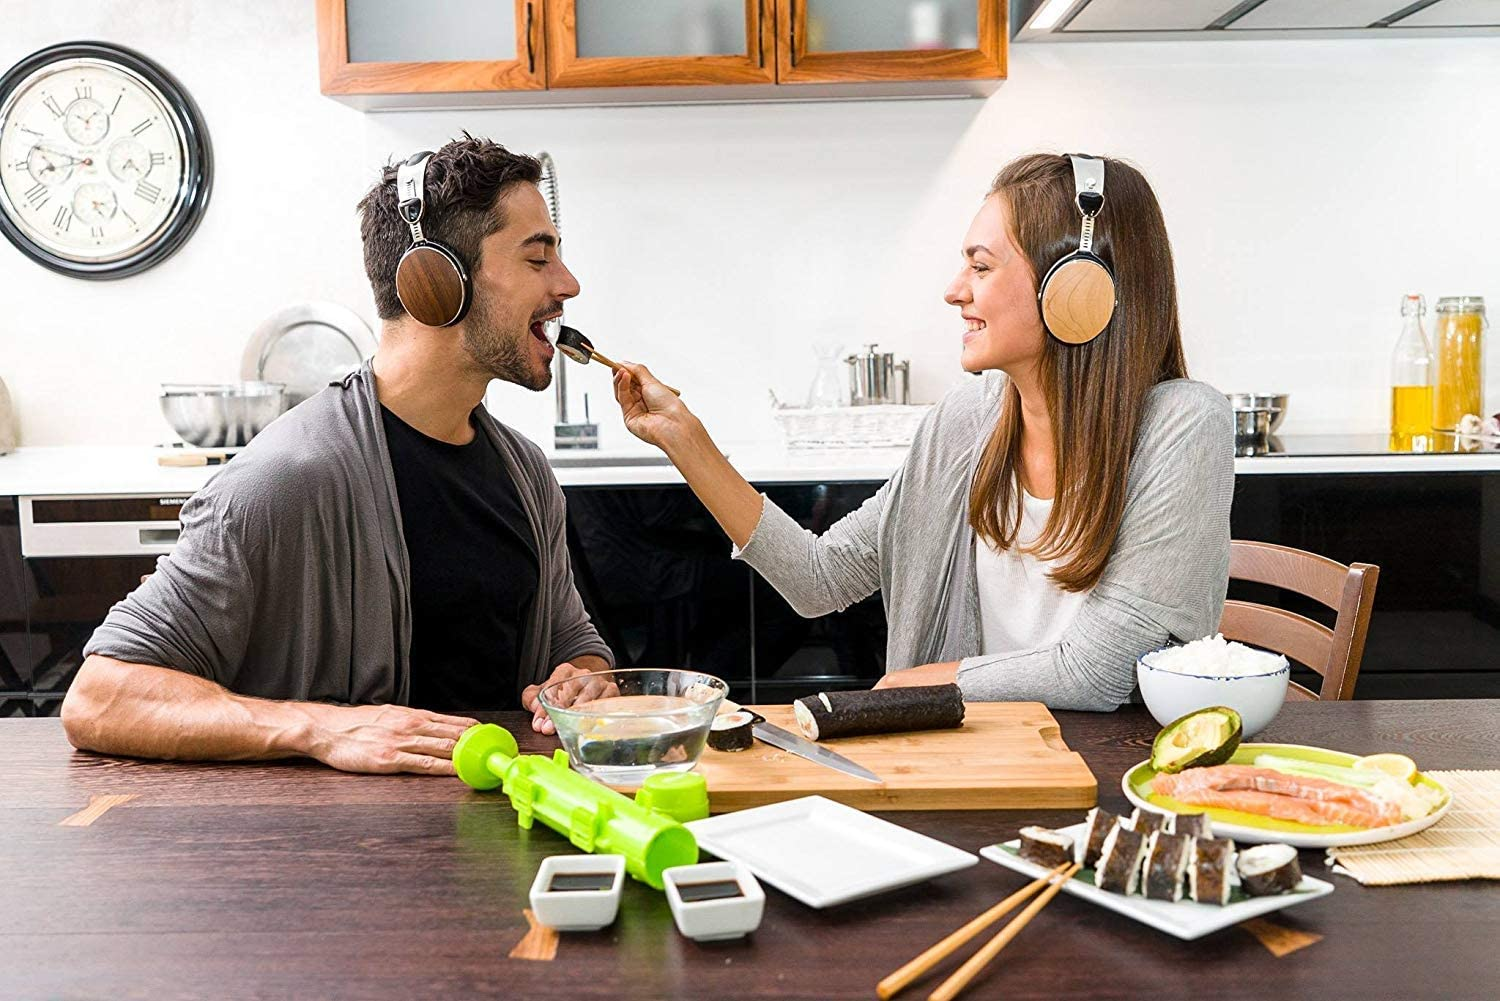 People eating and hearing Most Durable Headphones